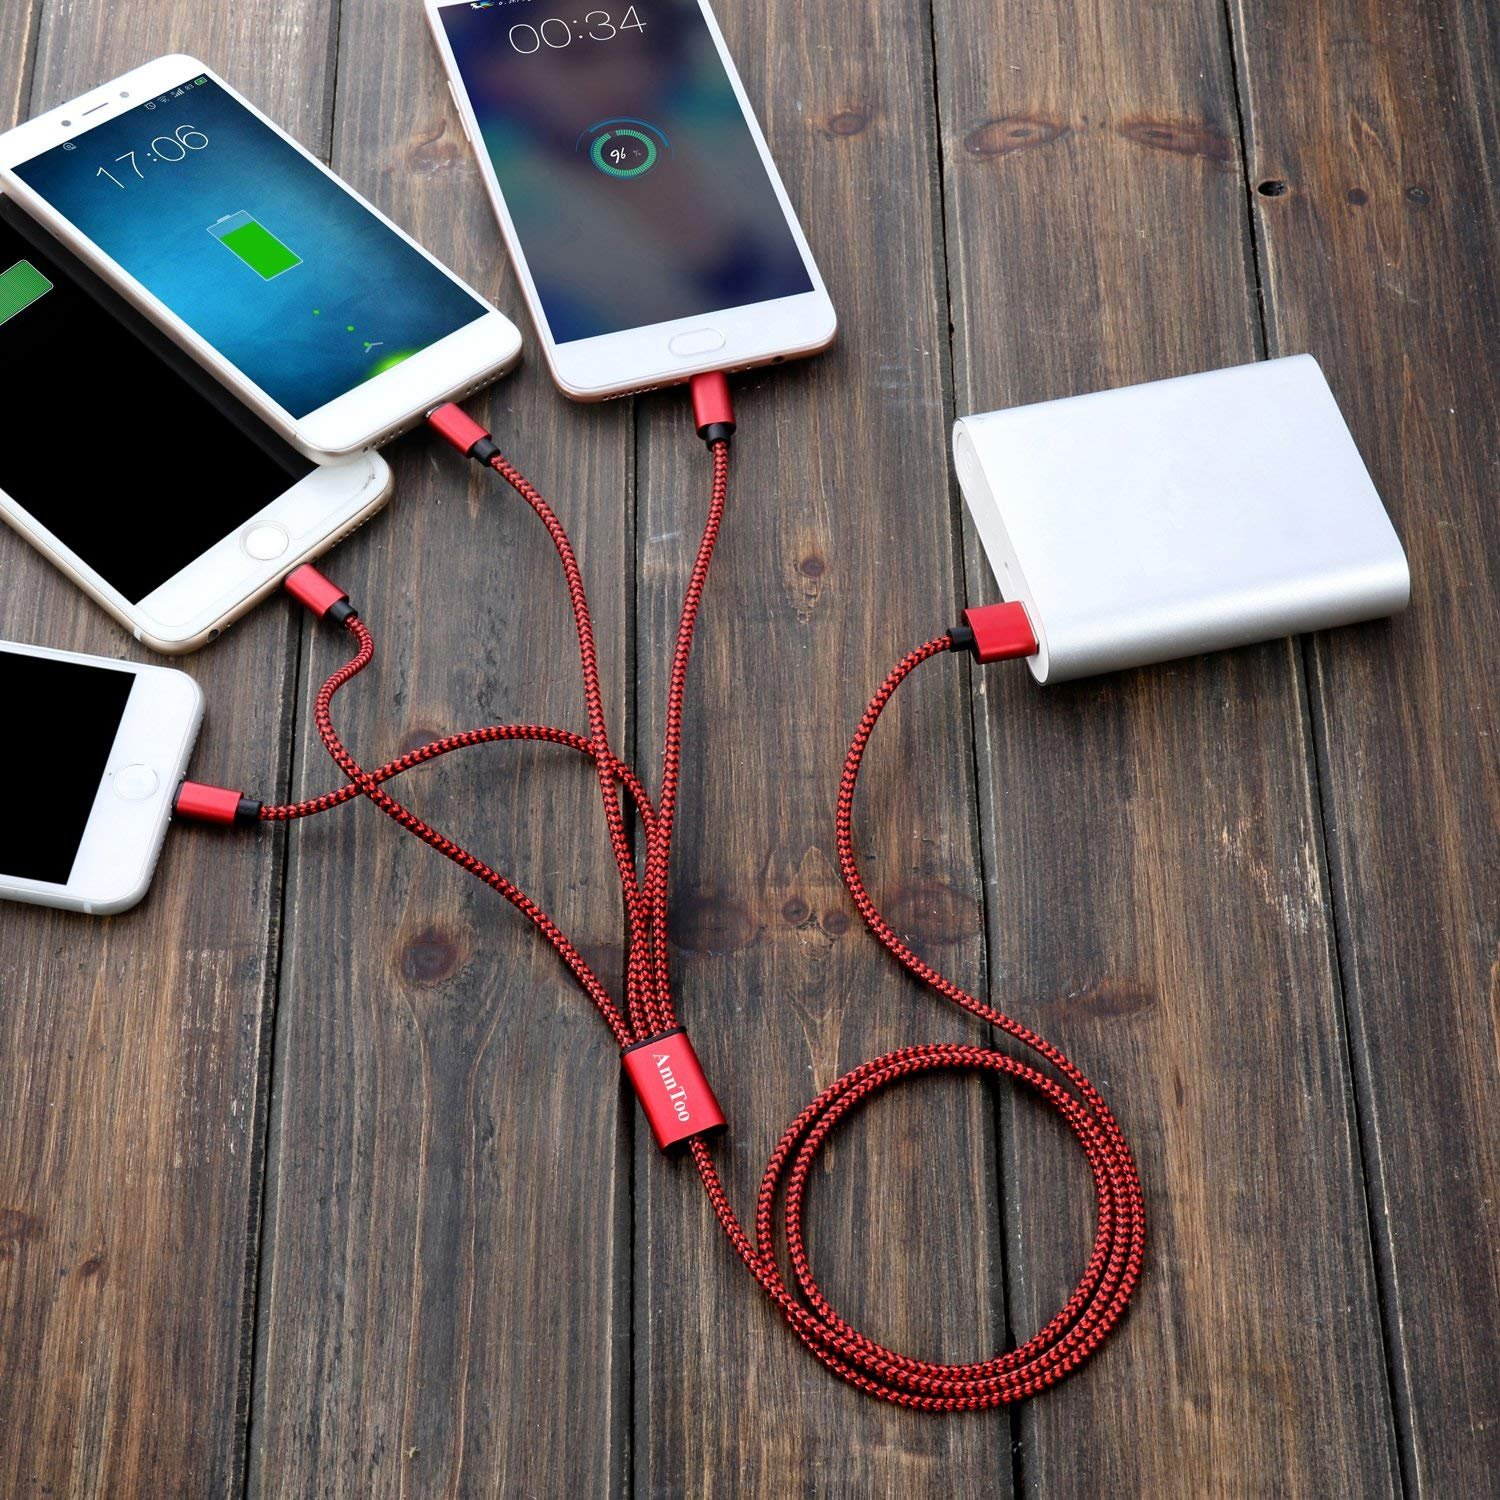 Multi USB Cable AnnToo Multiple USB Charging Cables 3.3 FT 4 in 1 Nylon Braided with Type C Micro USB and Lighting Connectors - Red [Only Charging]